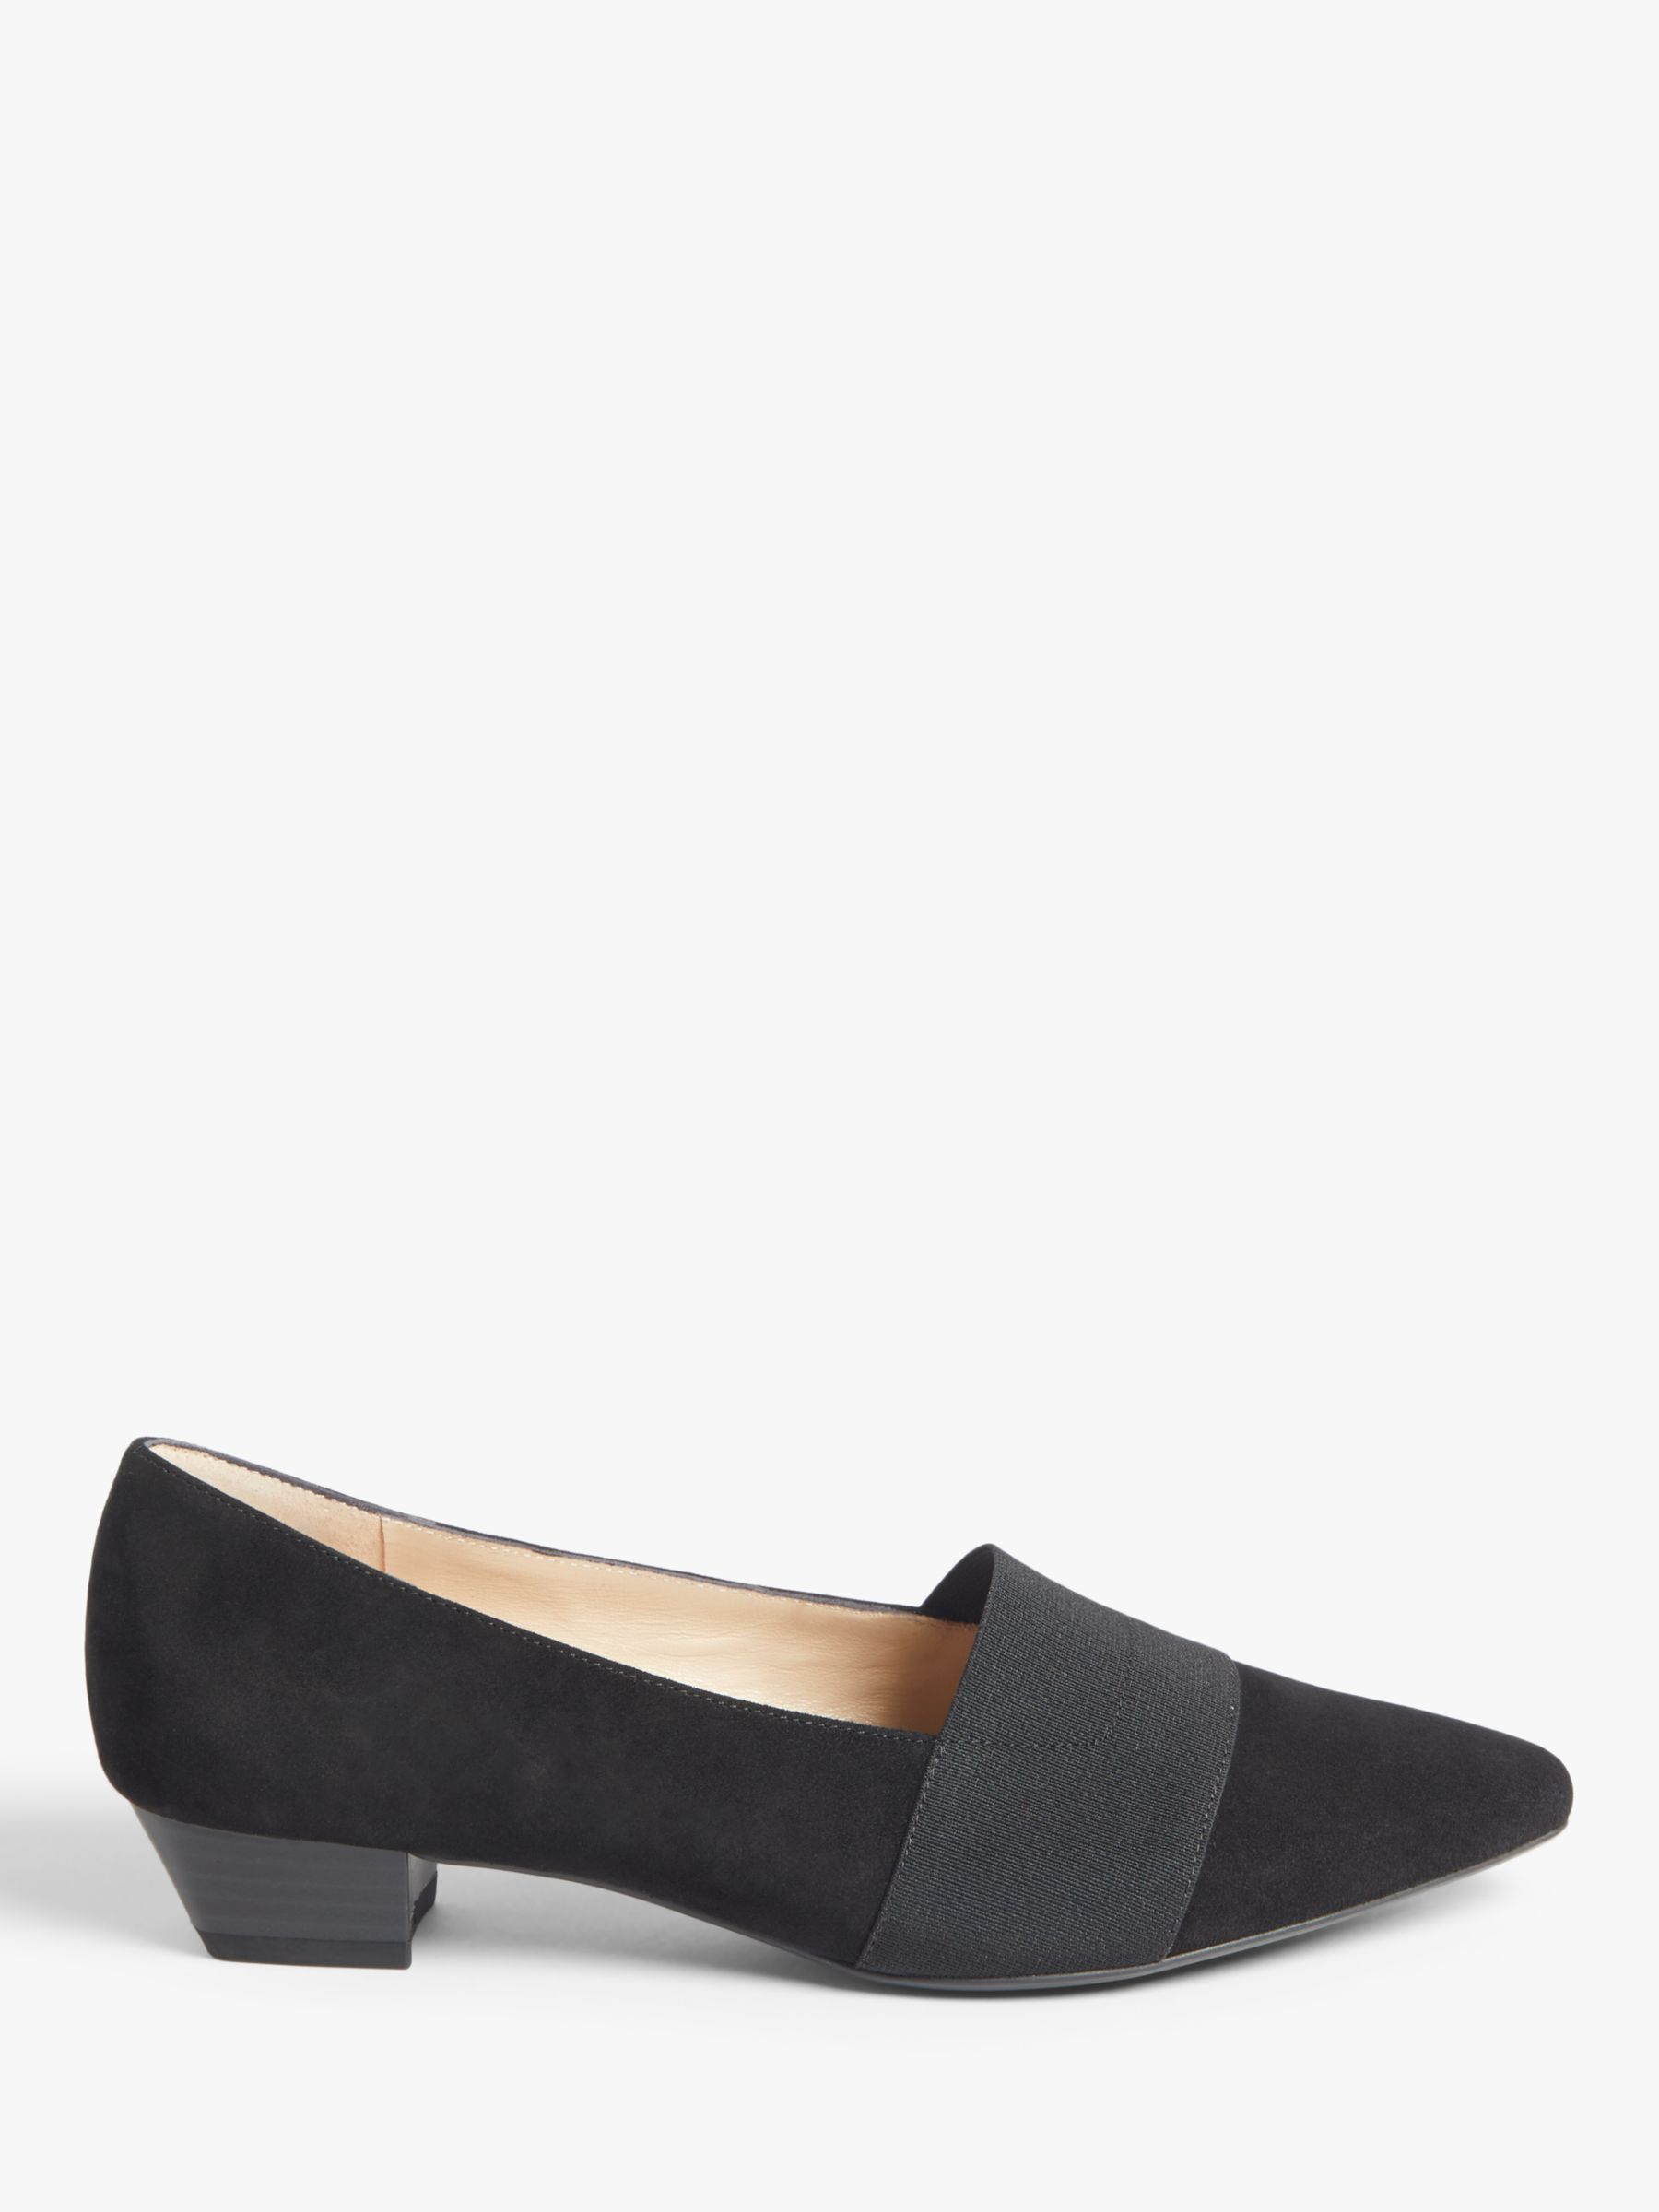 Peter Kaiser Peter Kaiser Lagos Pointed Toe Court Shoes, Black Suede